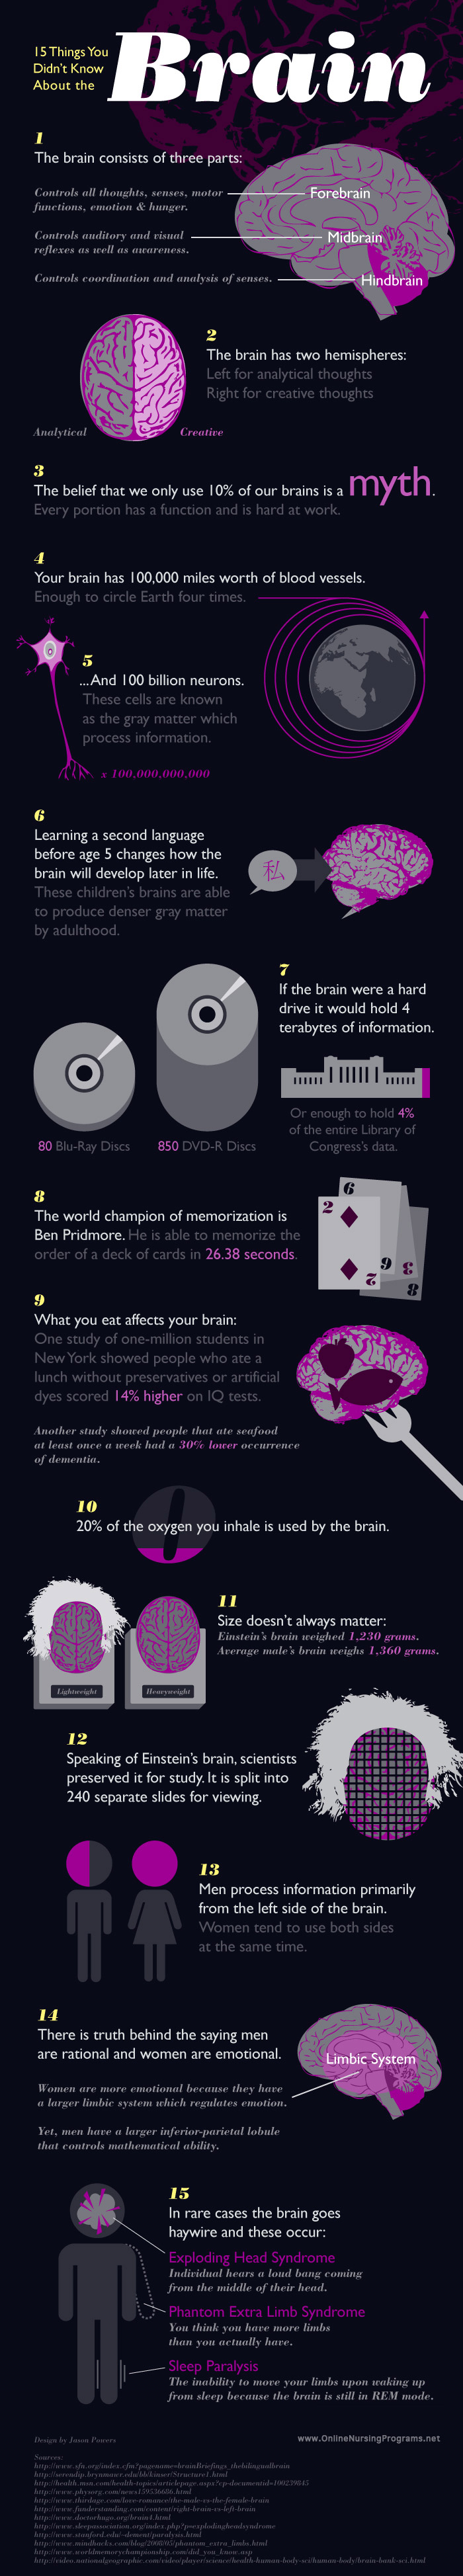 15-things-about-the-brain.jpeg